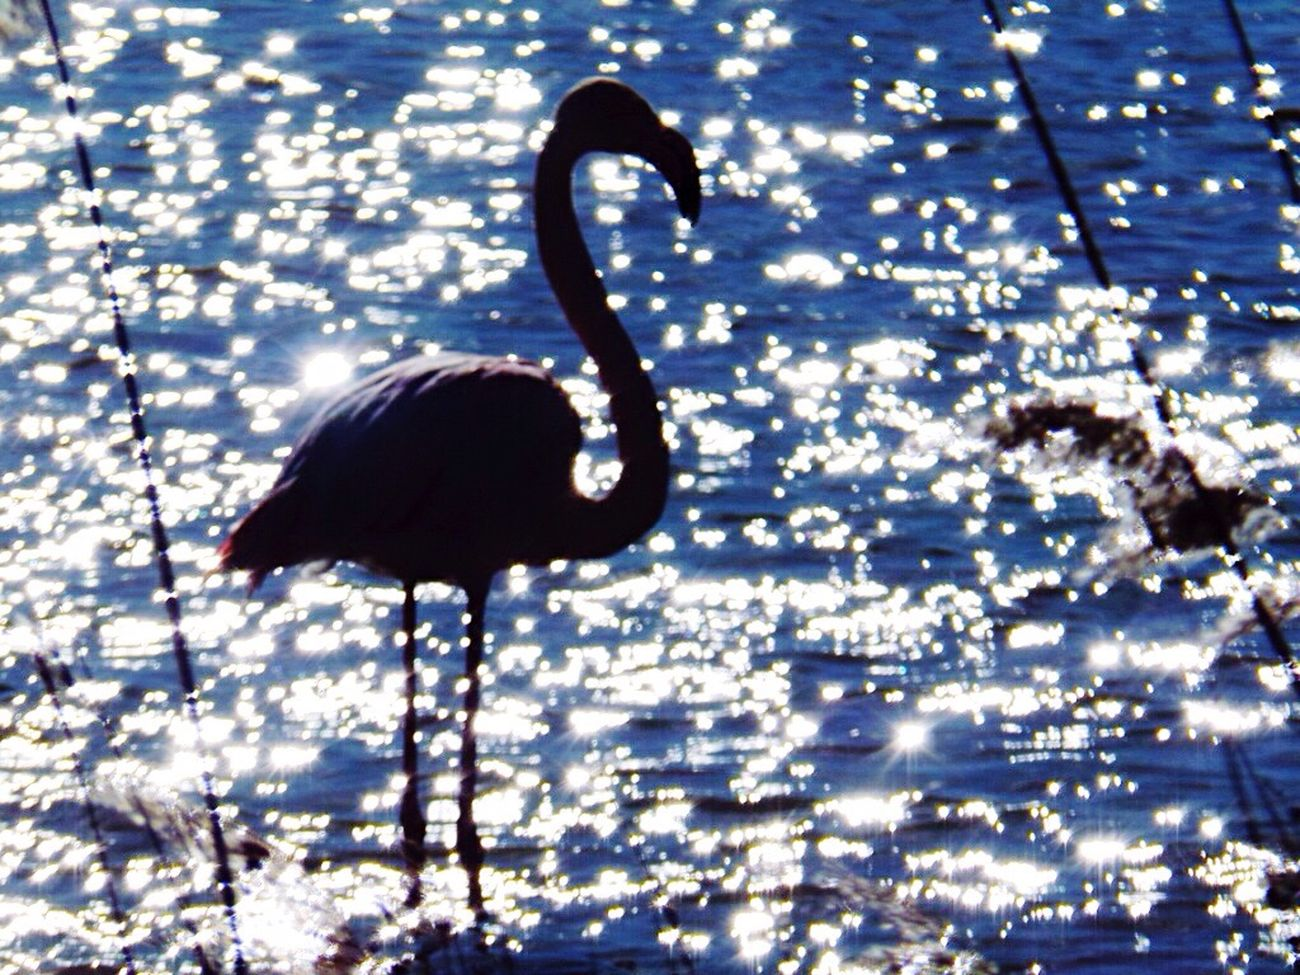 Showcase April Flamant Rose Camargue Taking Photos Enjoying Life Relaxing Schooltrip Hello World Loneliness Magic Likeforlike Sunset France